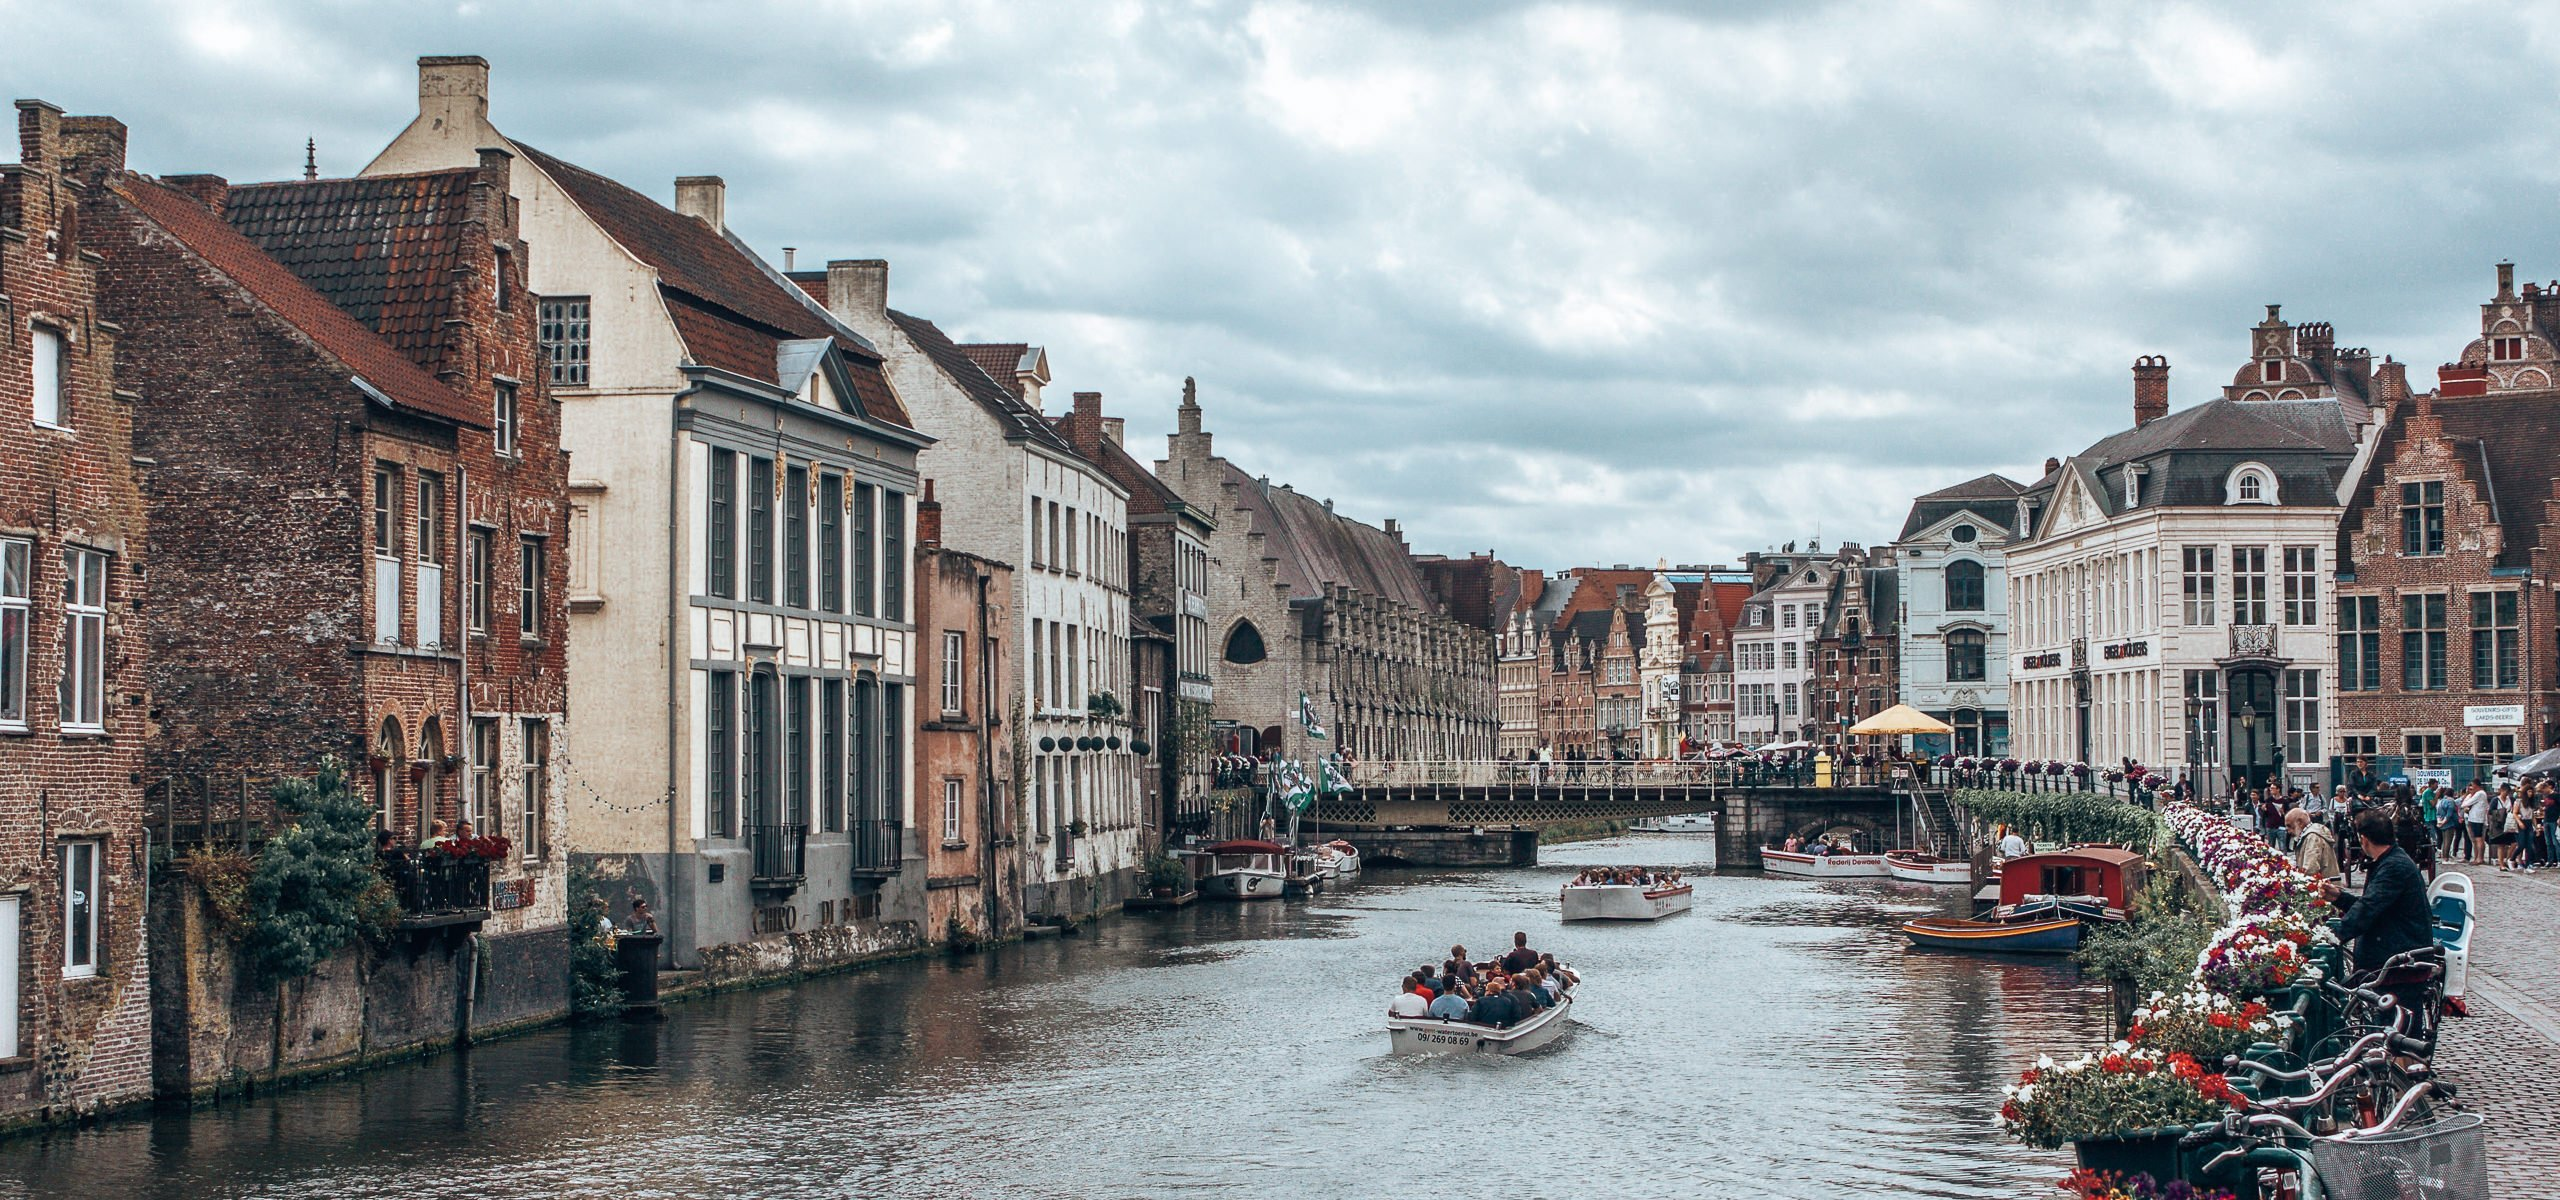 The Undiscovered Flemish Jewel: A Day Trip To Ghent